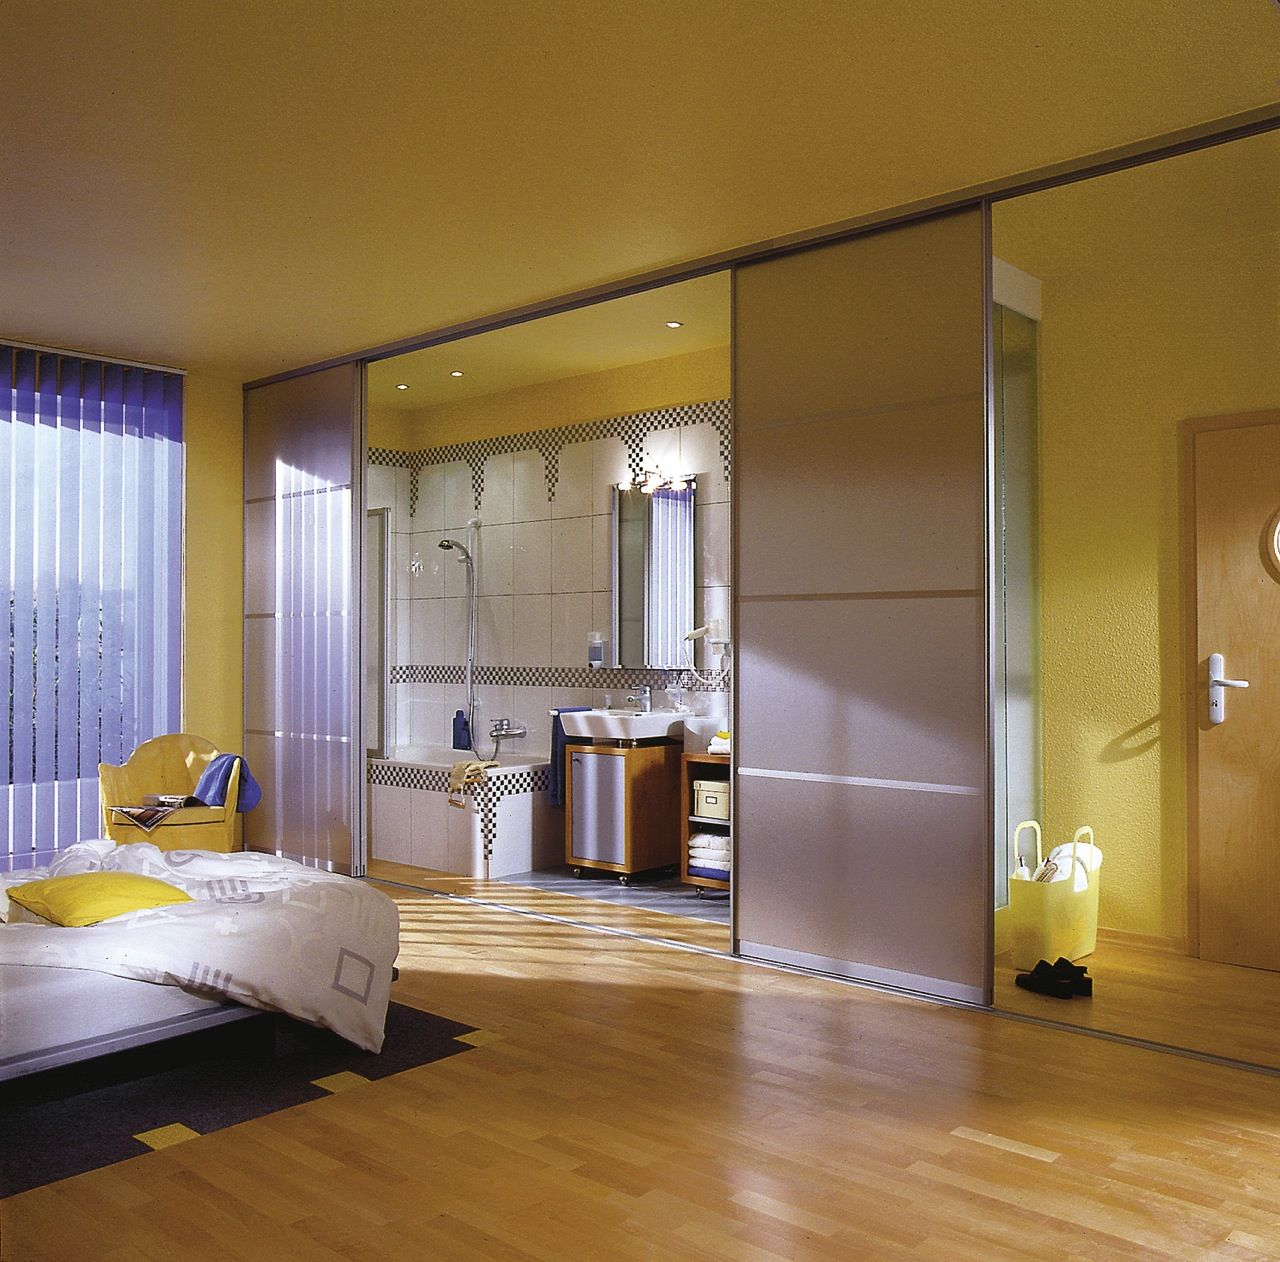 Heavy Duty Room Dividers For Home Google Search Hanging Room